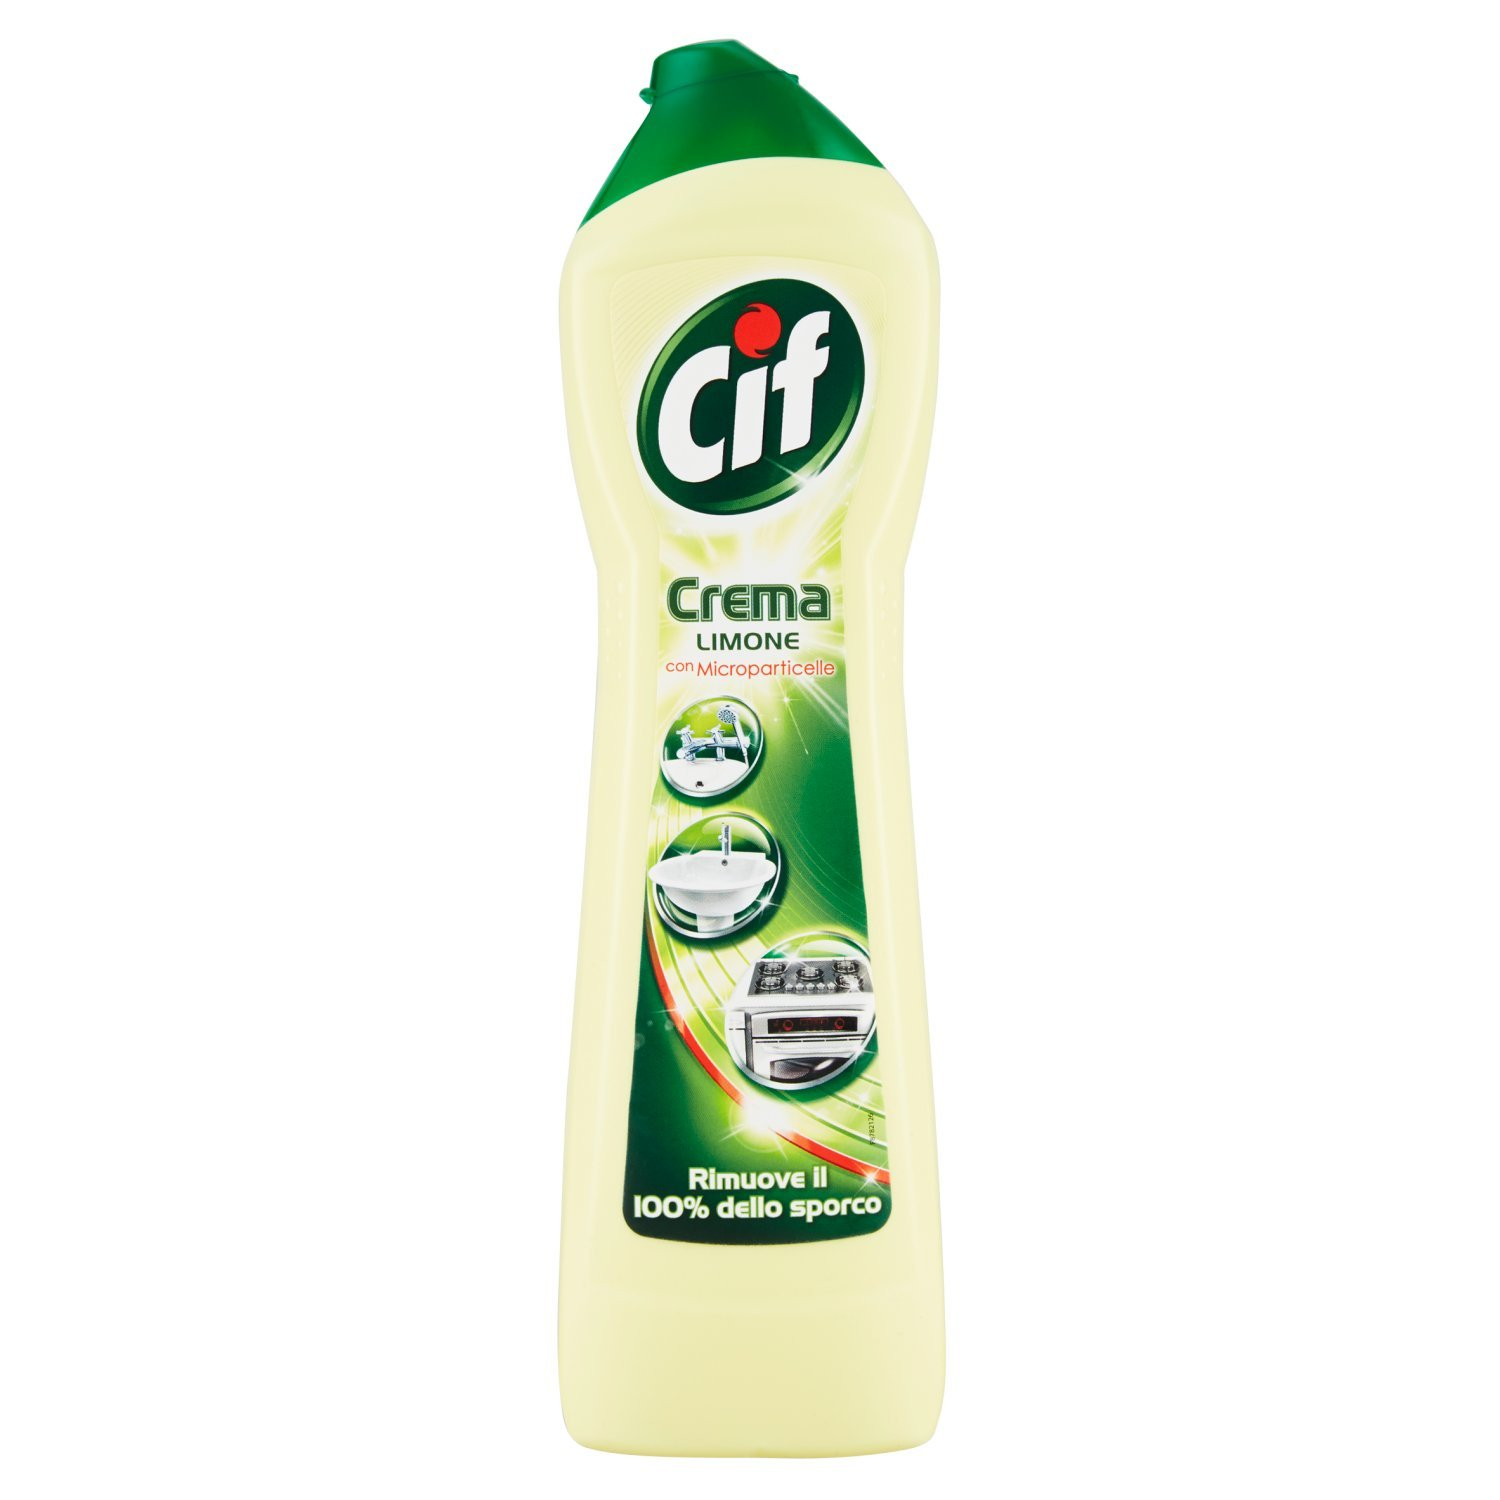 Cif lemon cream with Microparticles 500ml – 8 units [4 L] Unilever Italia (Retail)